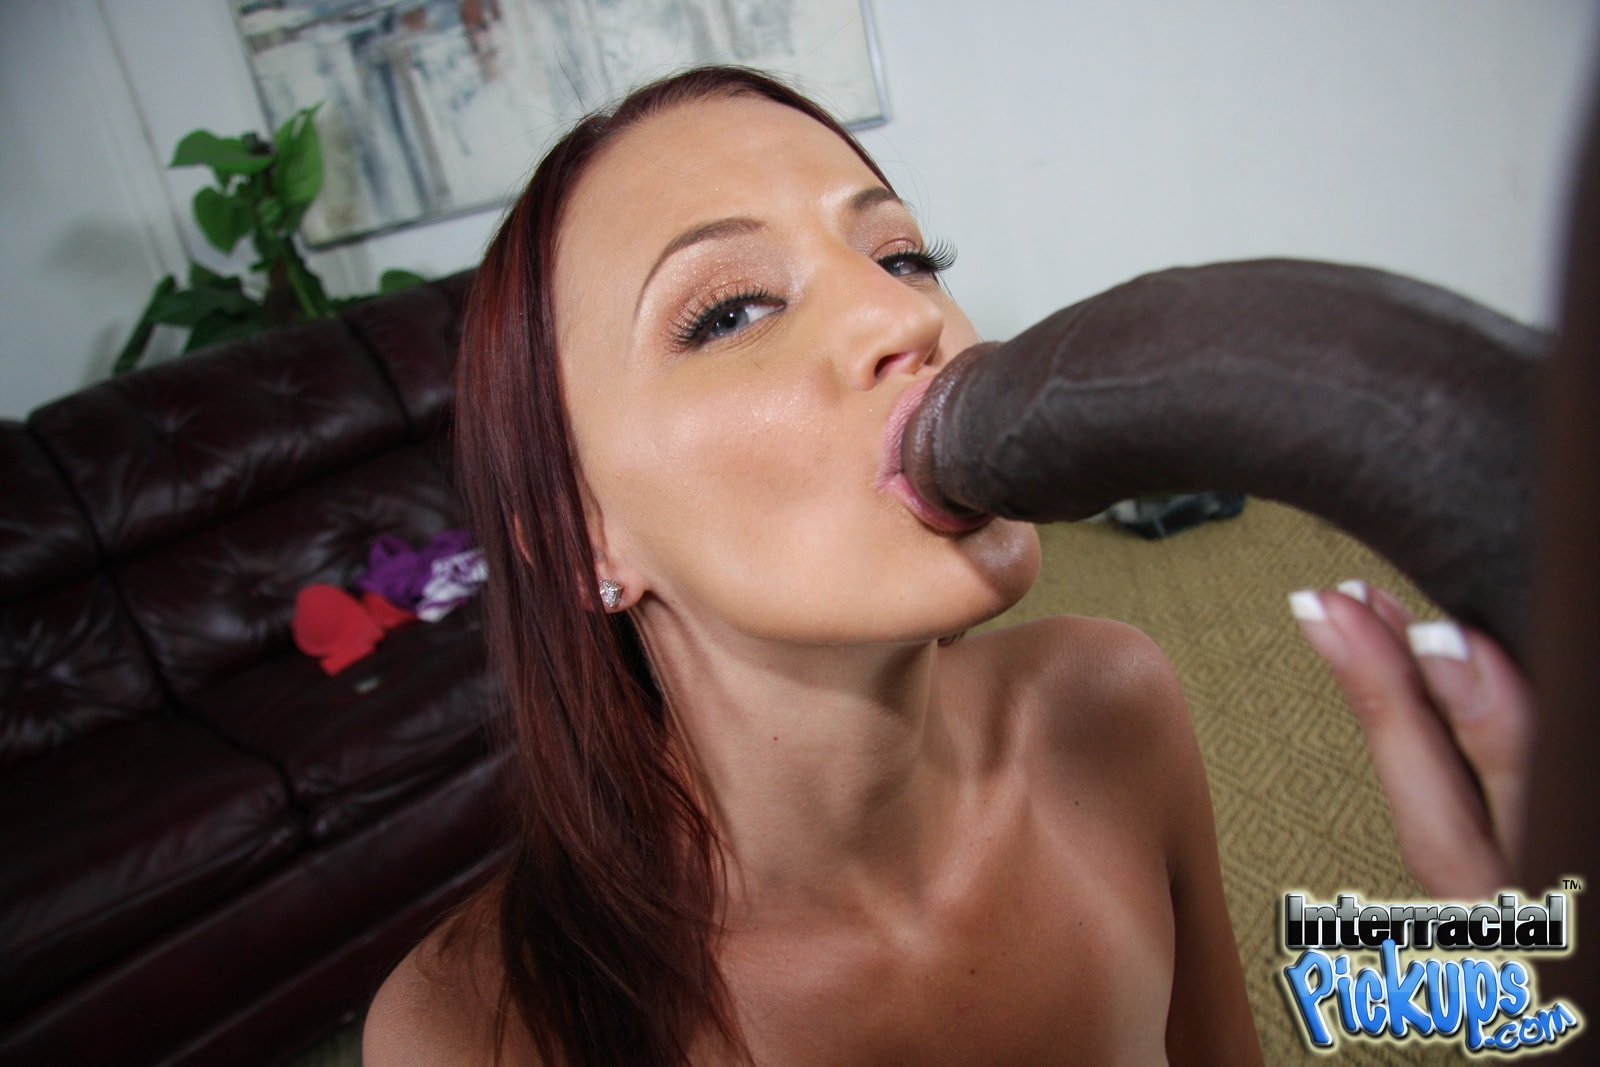 interracial-pickups-tube